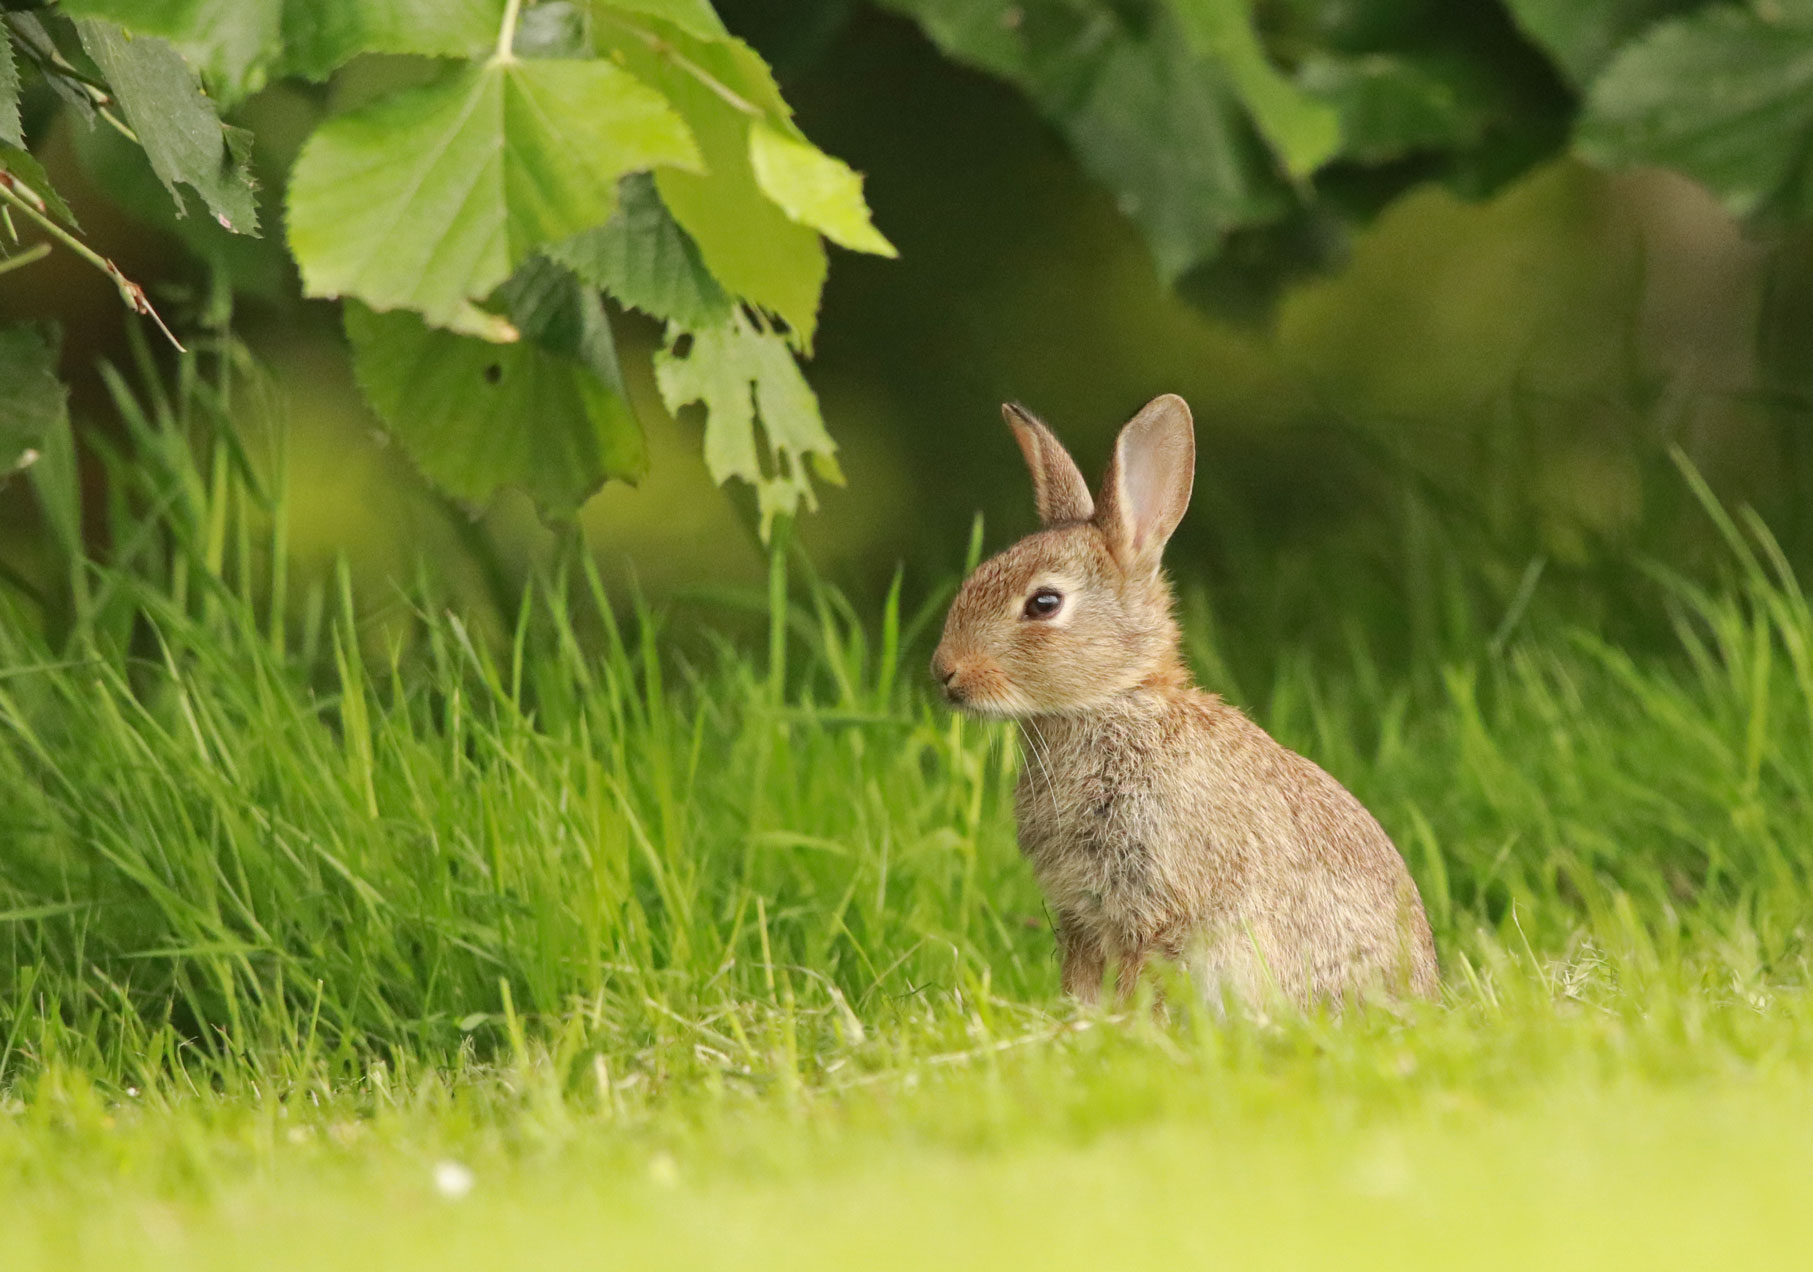 Young rabbit, Harrogate Stray